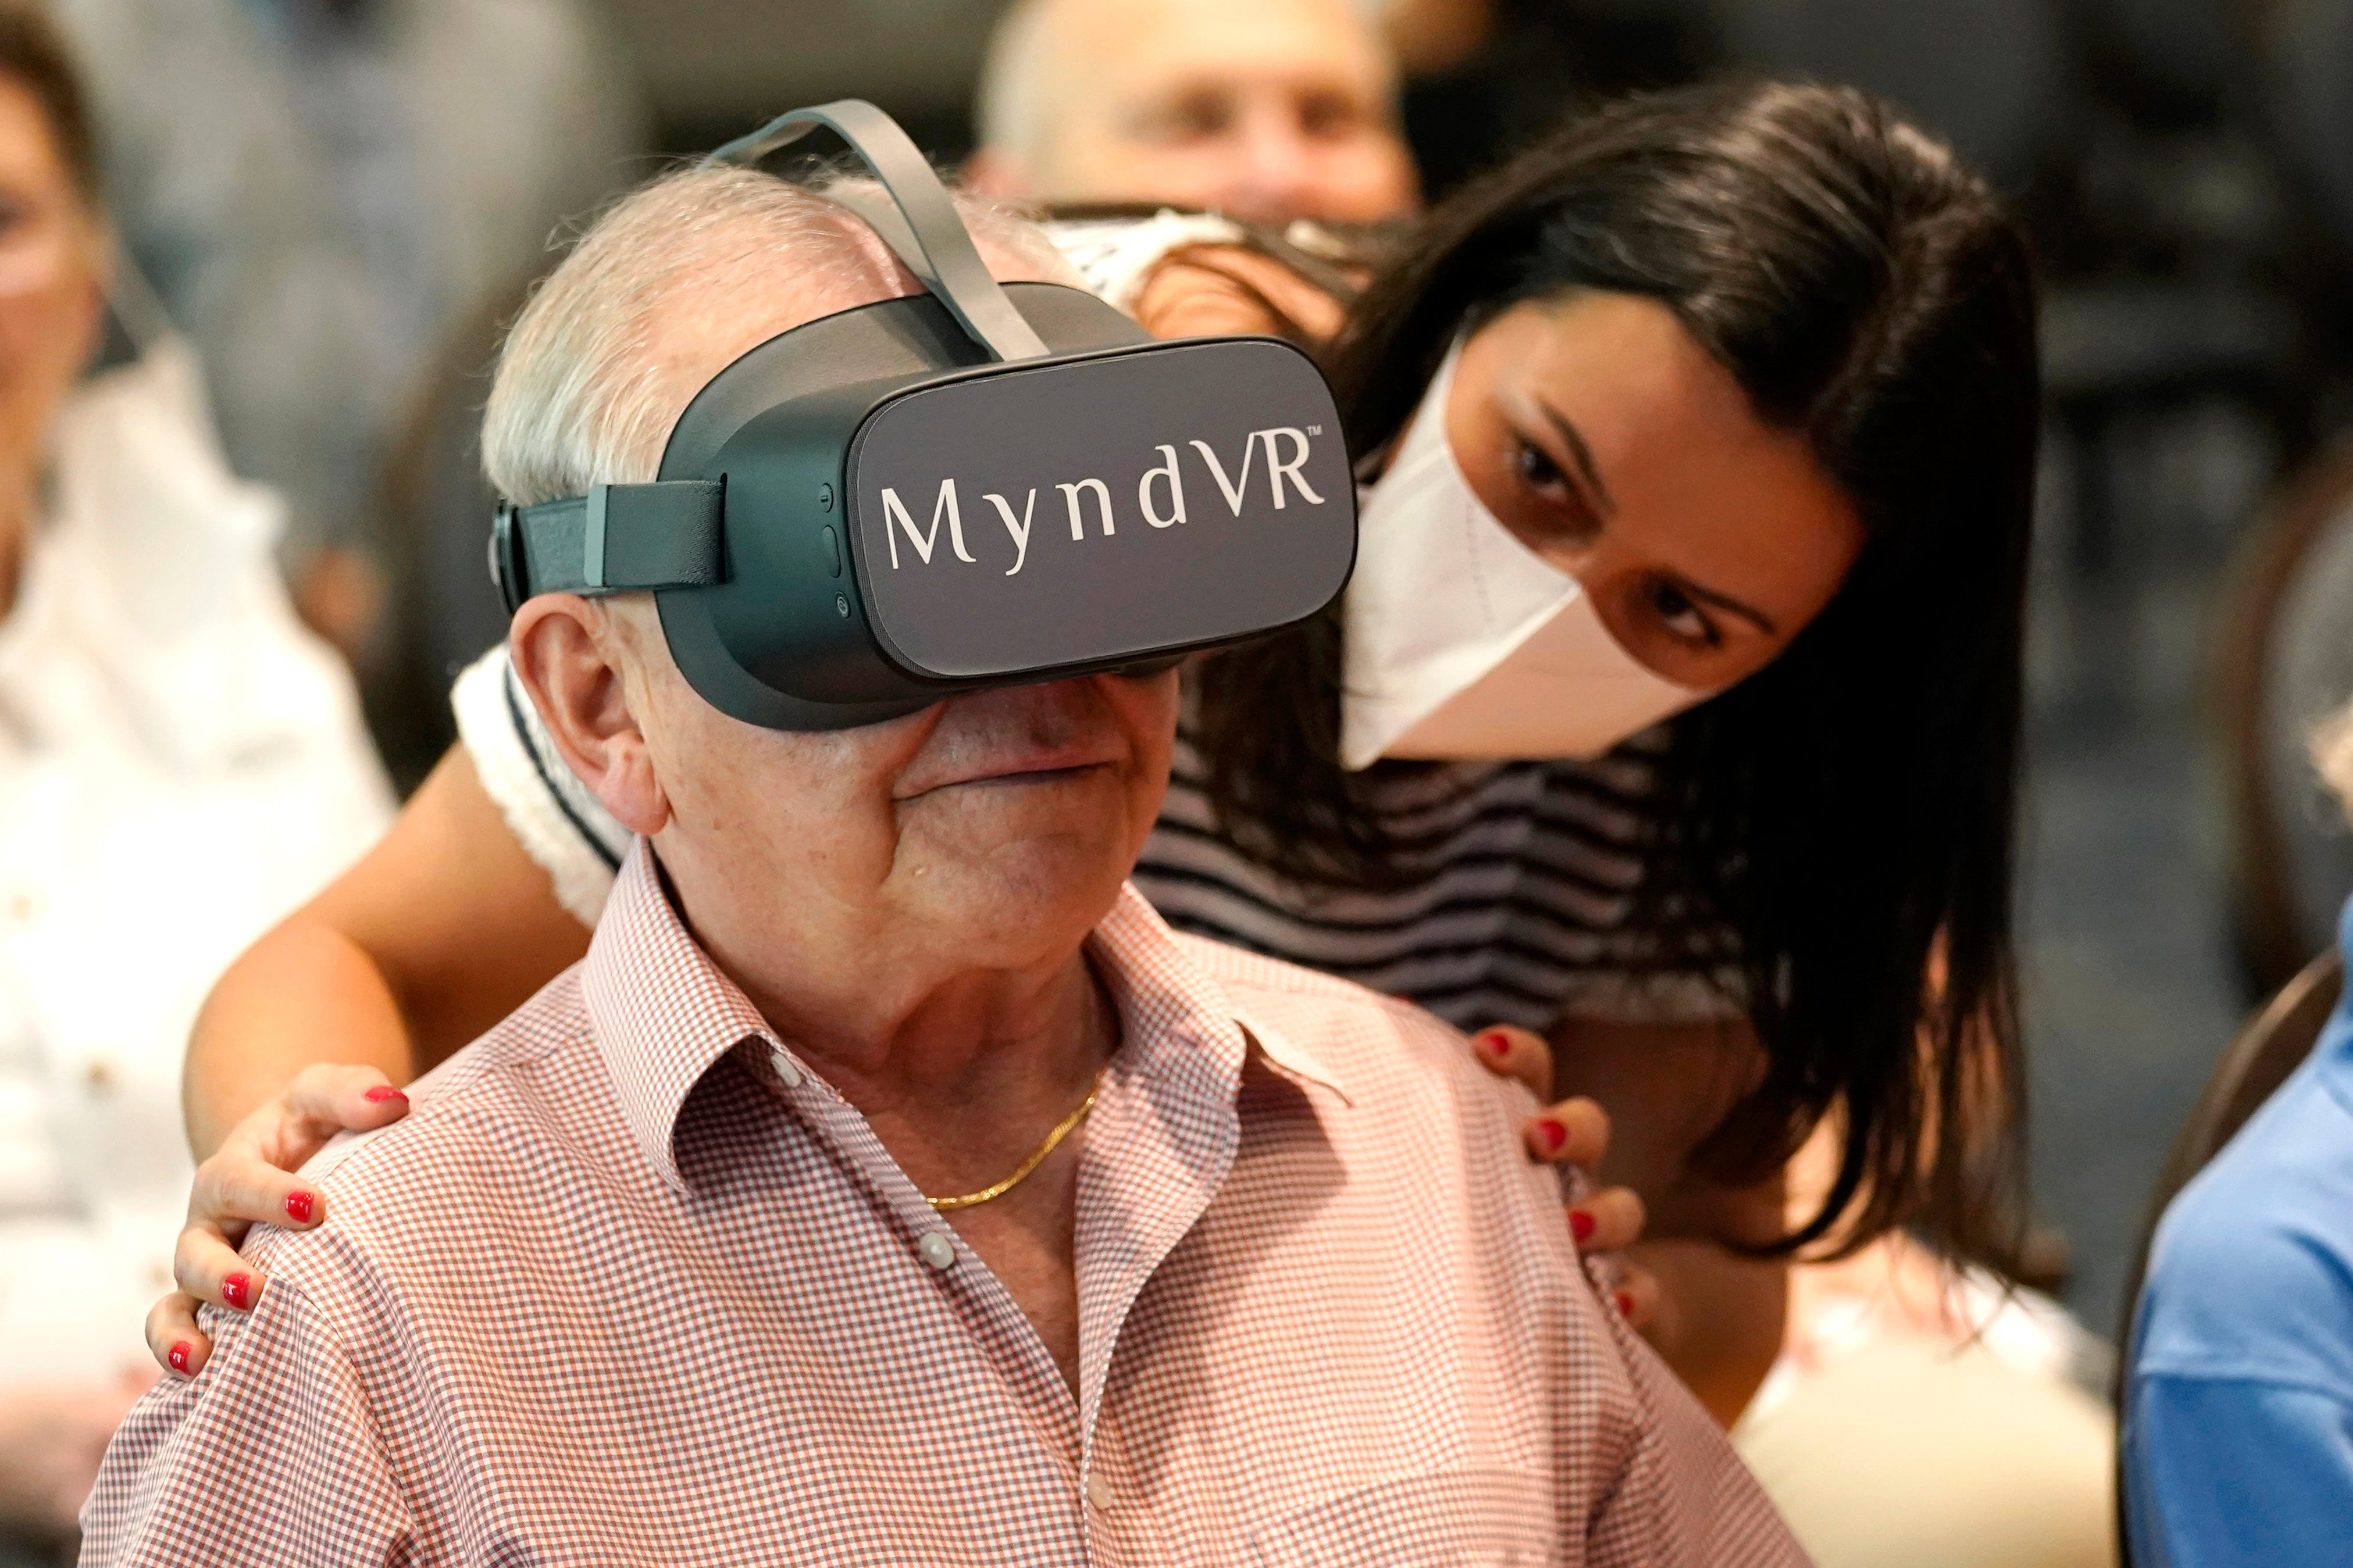 Can virtual reality help seniors? Study hopes to find out 2